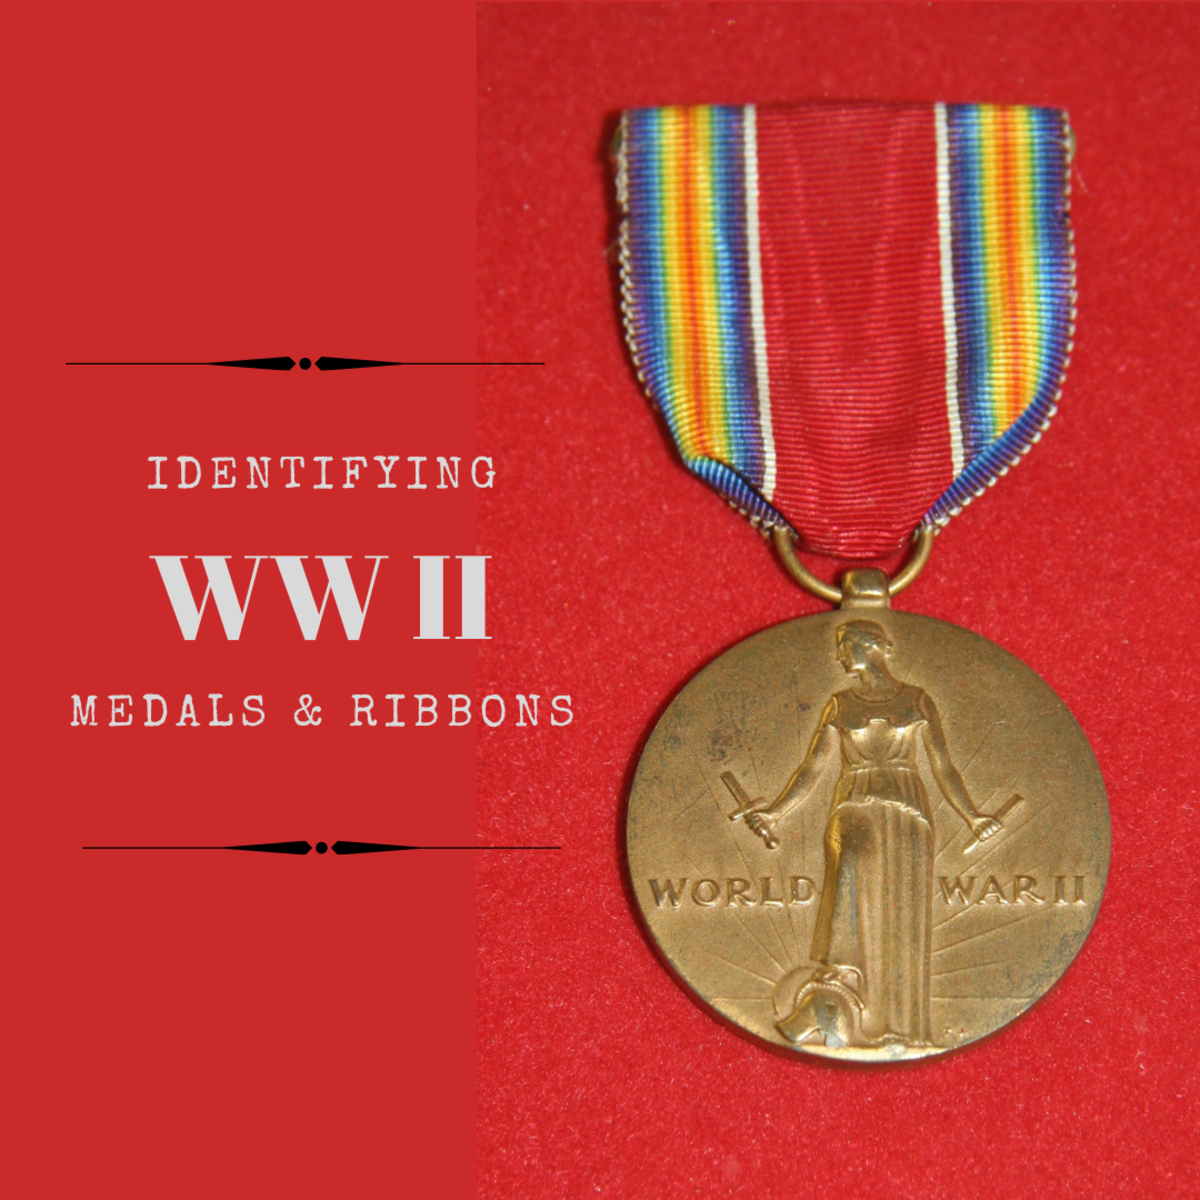 Complete guide to British, American and German World War II Campaign medals, ribbons and clasps